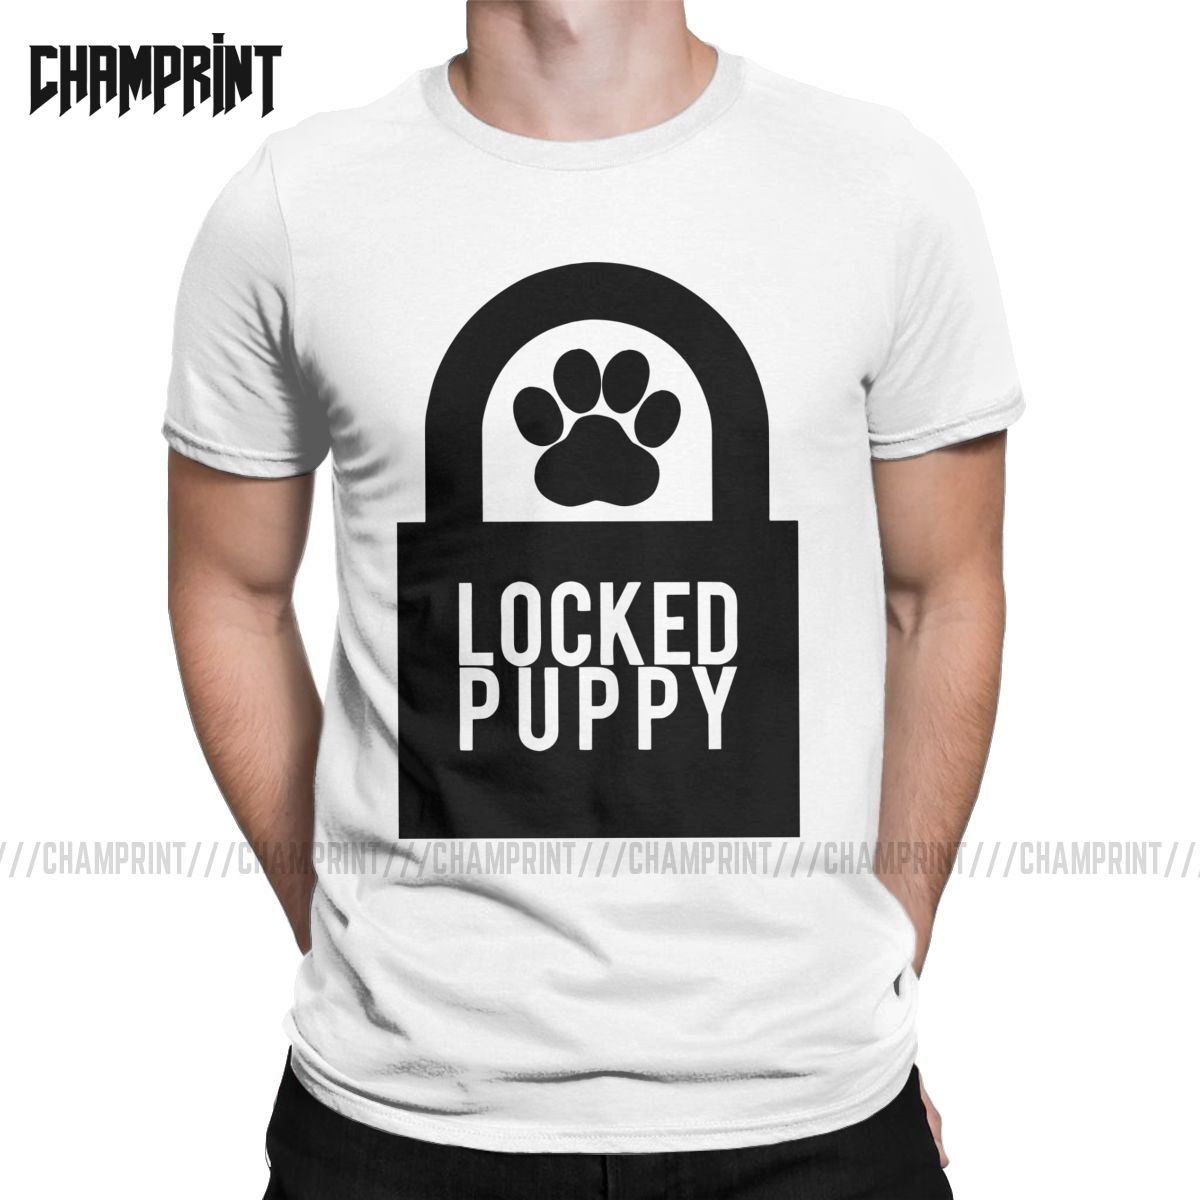 Men's T-Shirt Locked Puppy BDSM Cotton Tees Short Sleeve Dominant Submissive Slave Play Submission Master Sexy Sub T Shirt